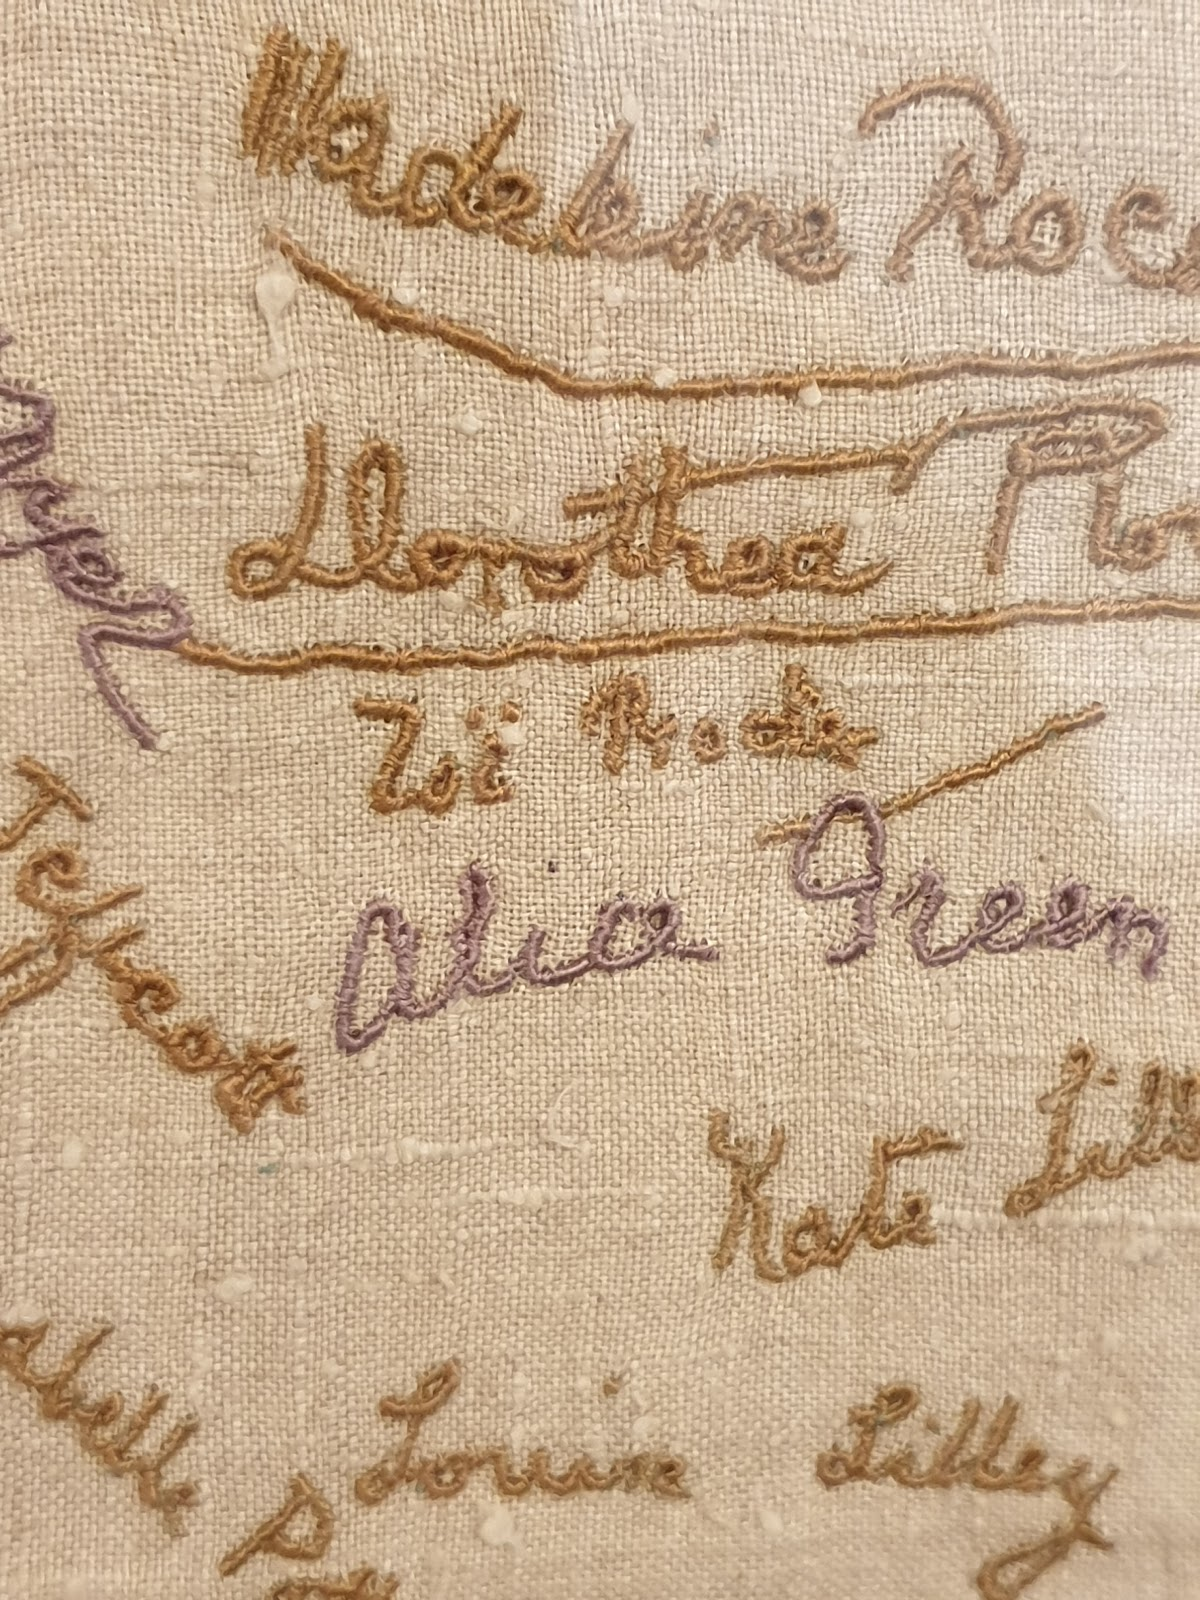 Motive/Motif: Artist Commemorate the Suffragettes London Embroidery School